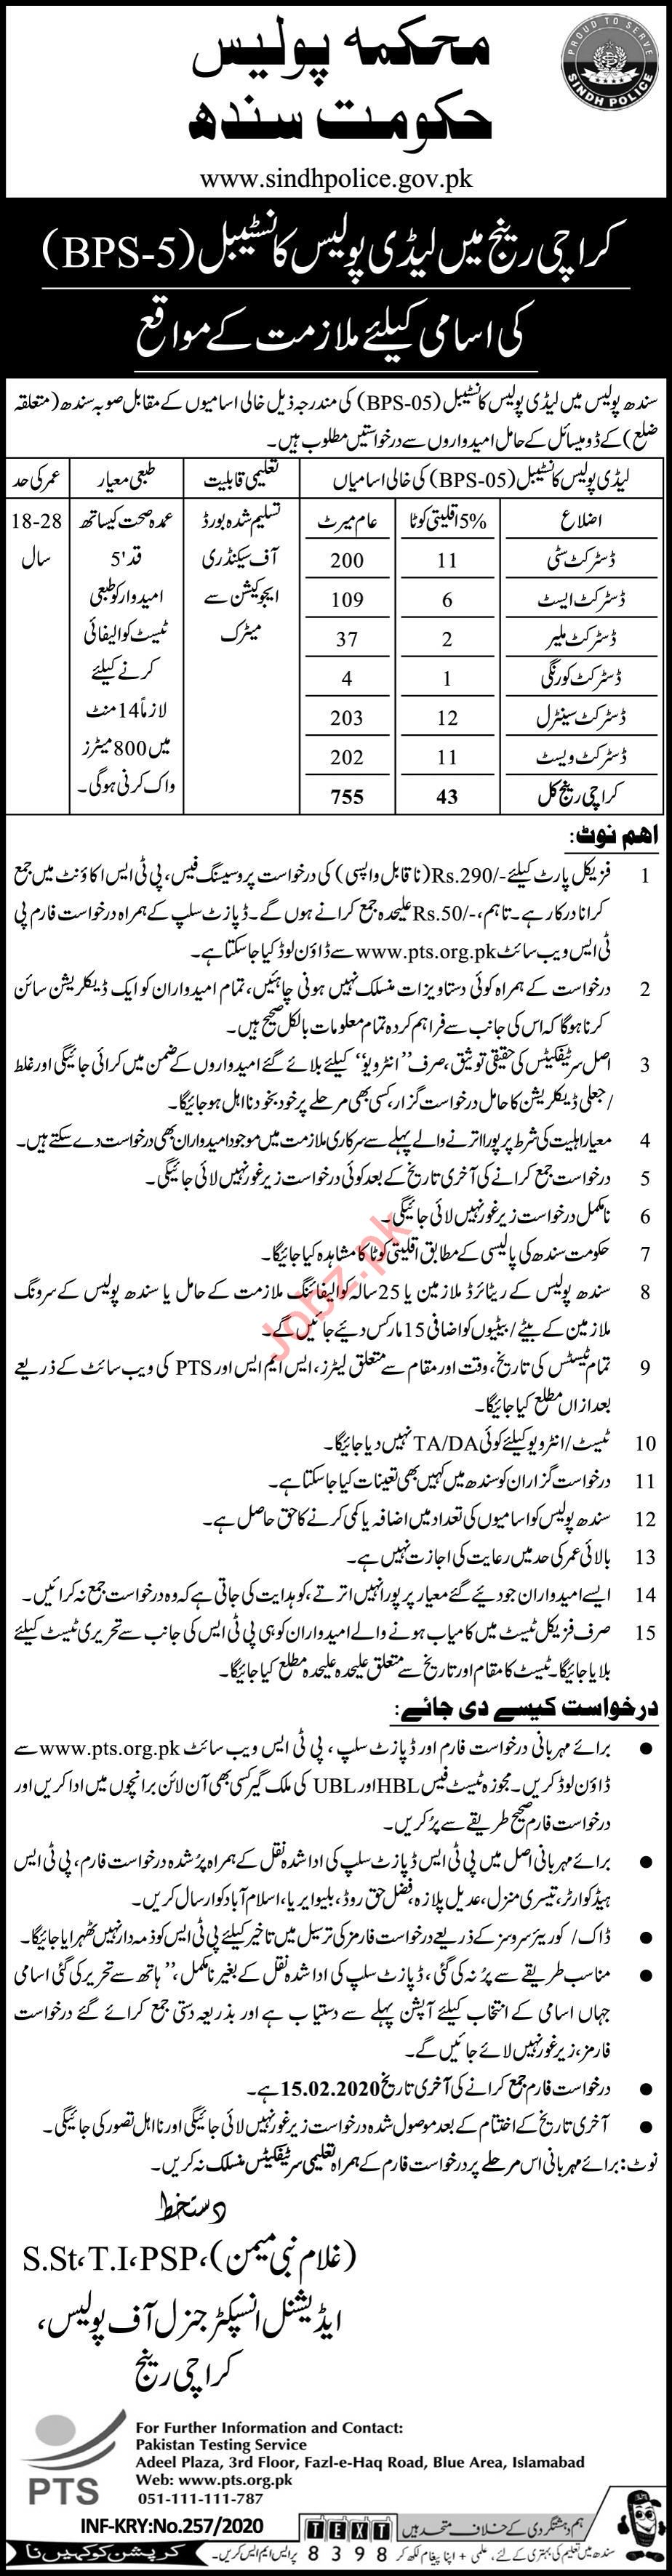 Sindh Police Department Jobs For Constables via PTS